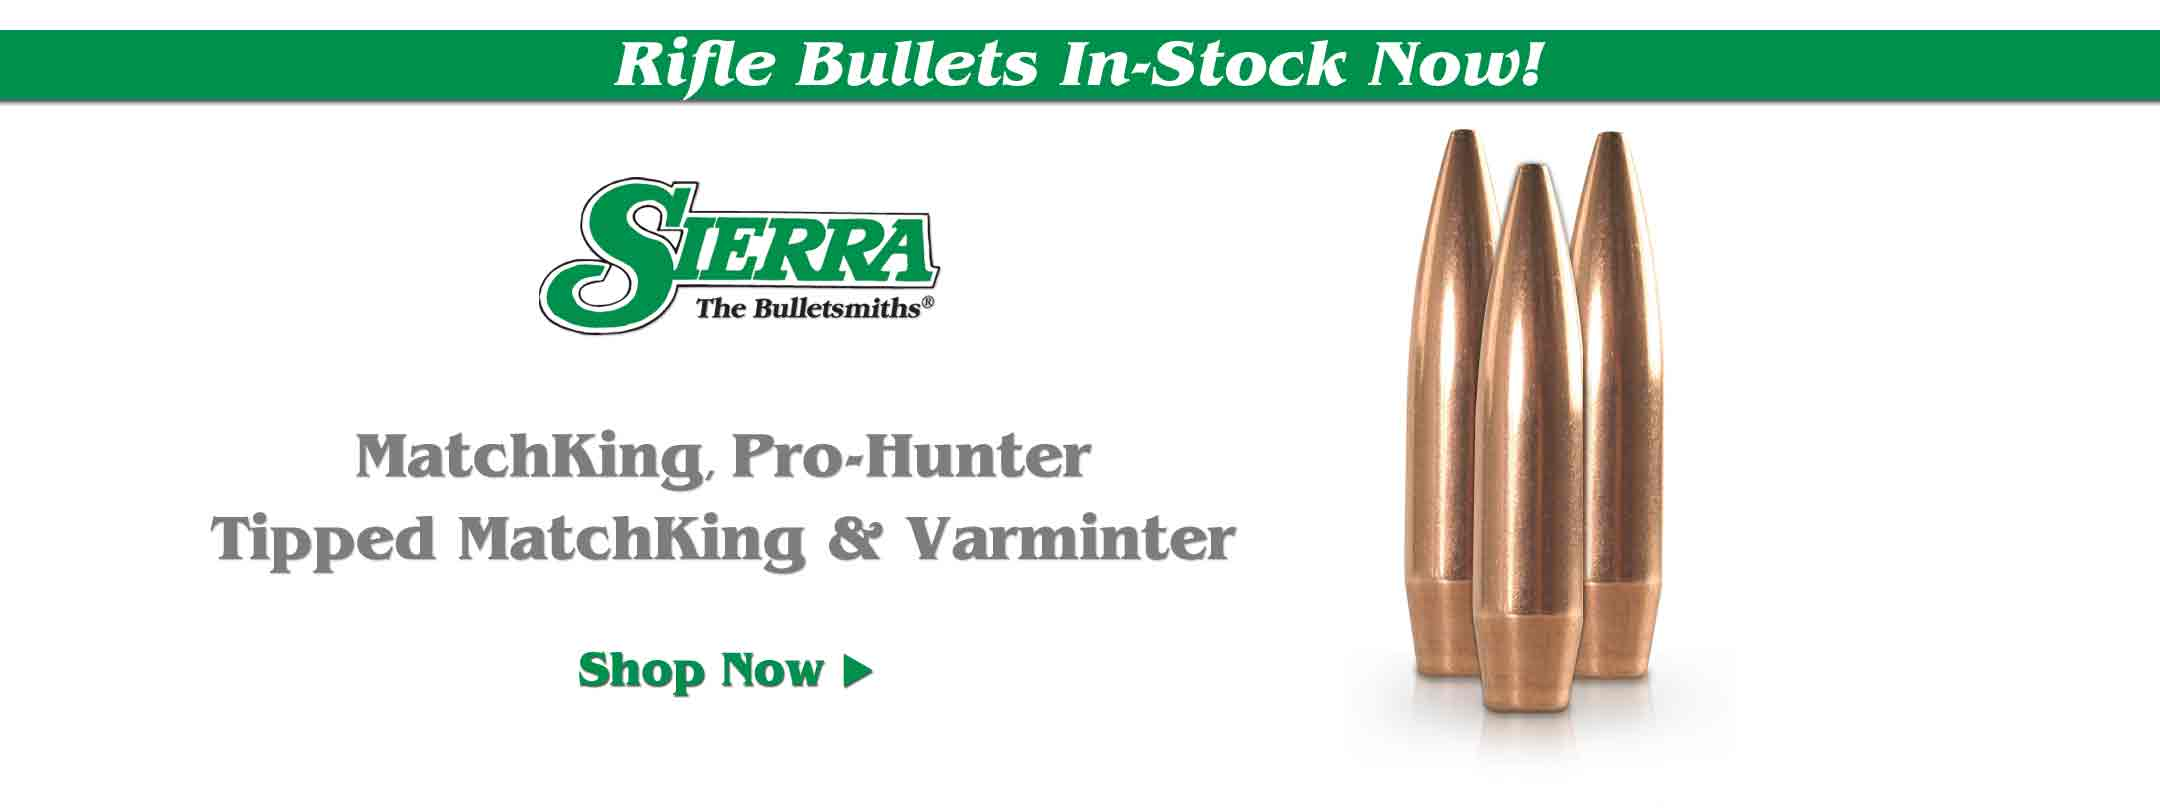 Now Available - Sierra Bullets